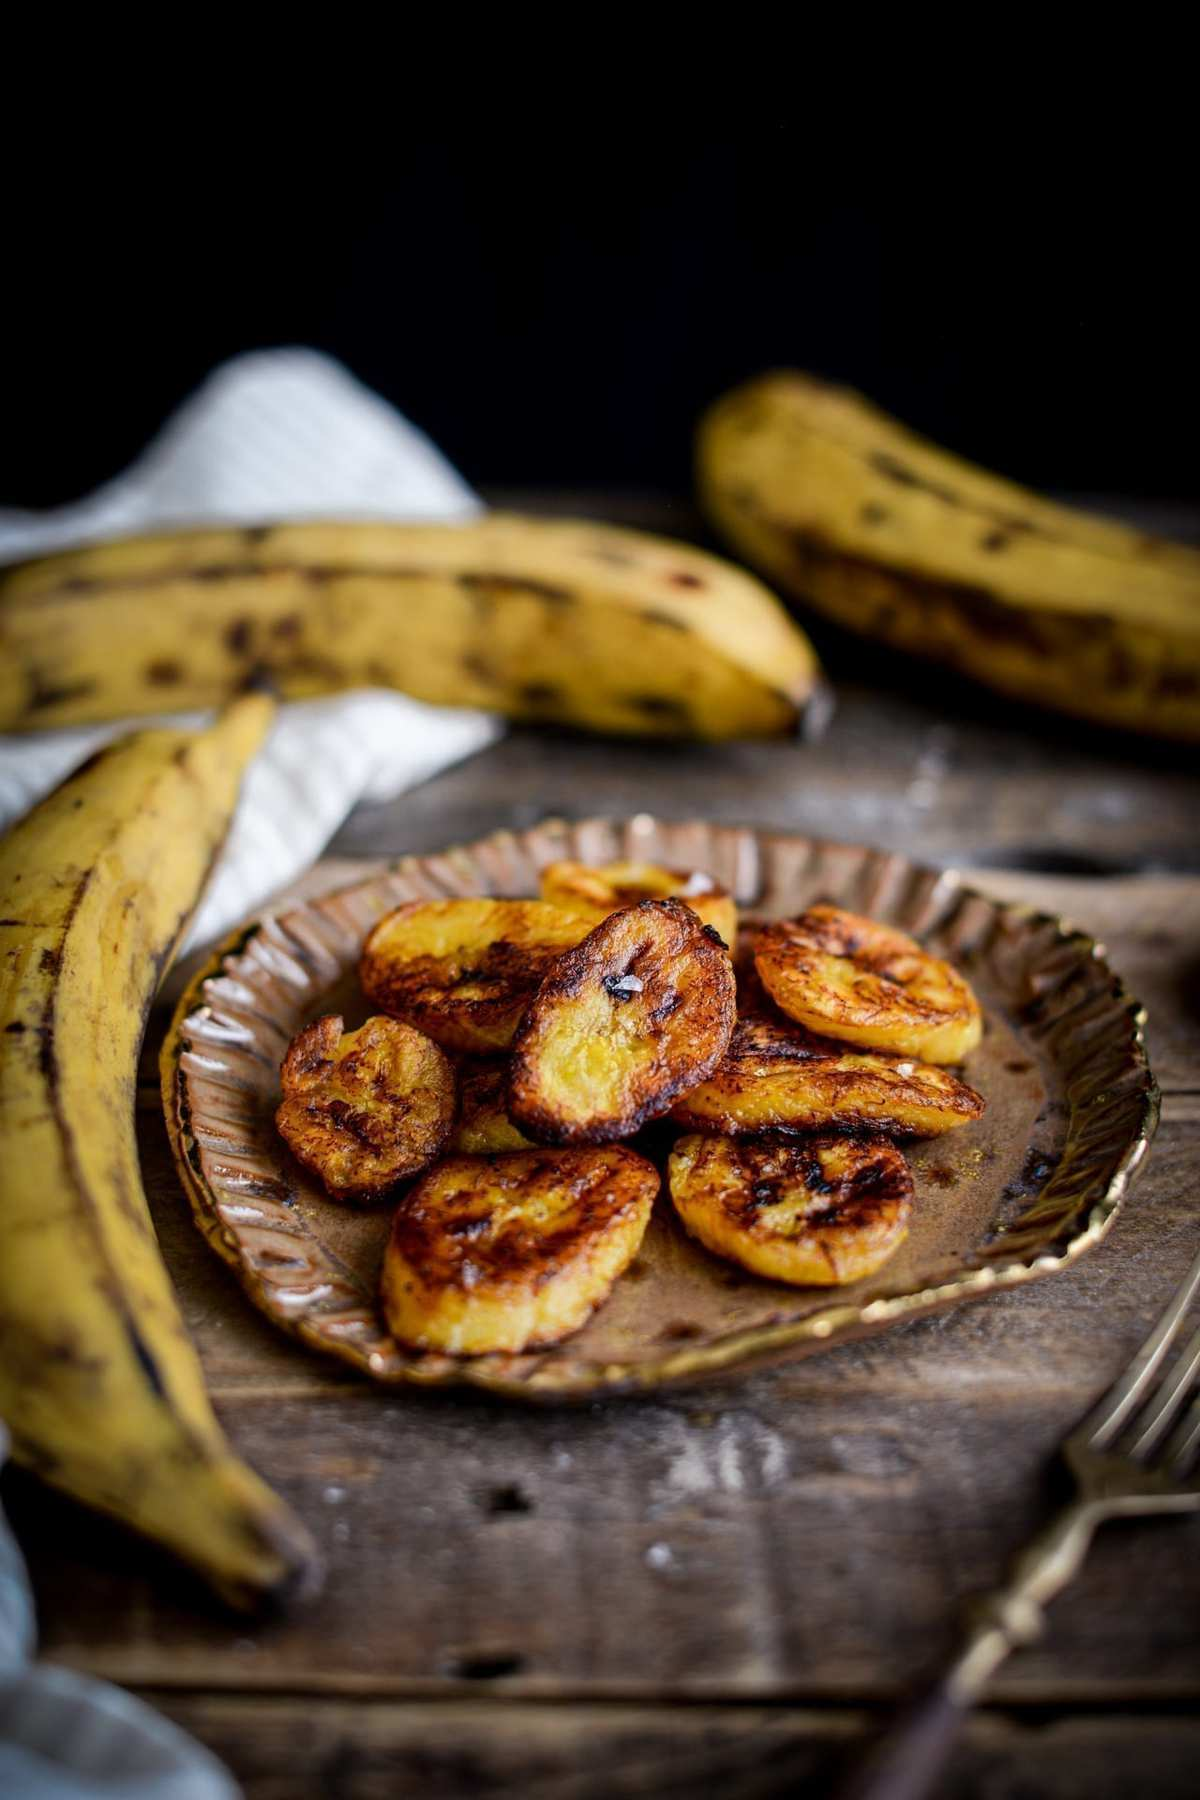 Fried Sweet Plantains A Quick And Easy Healthy Snack Fare Isle